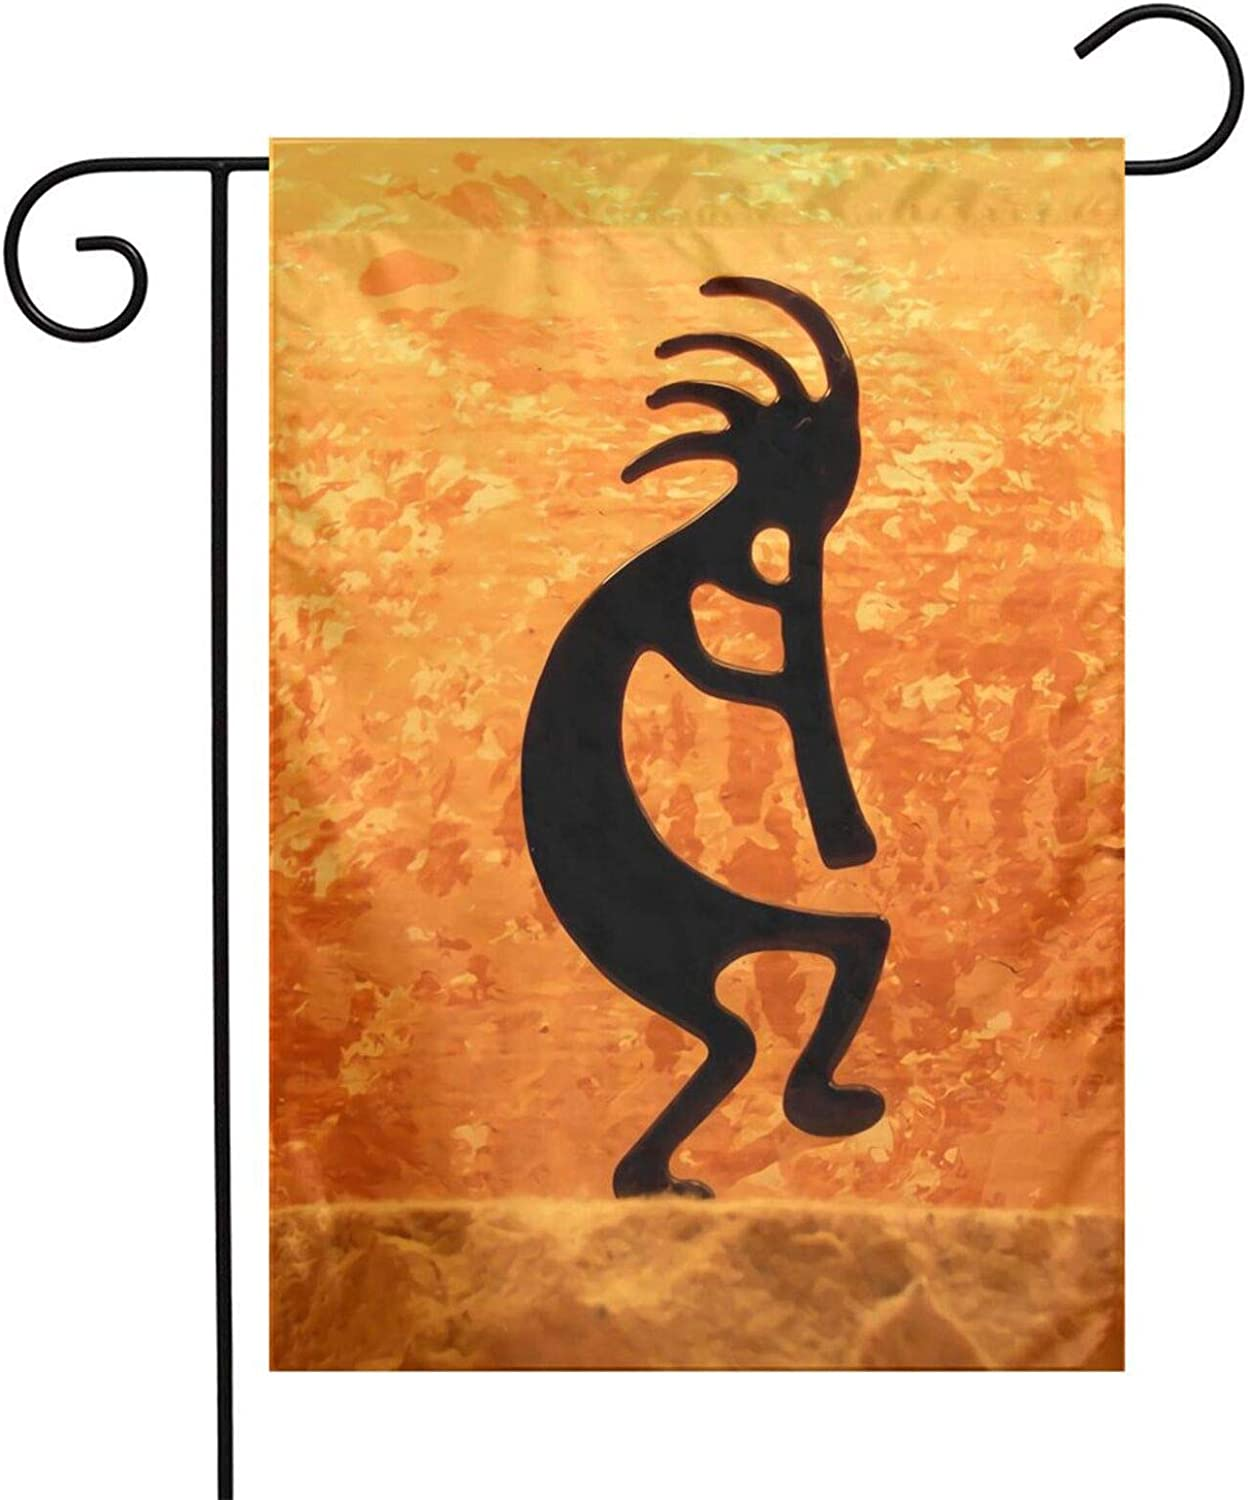 Kokopelli Southwestern Style Native American Indian Ancient Belief Family Party Outdoor Yard House Garden Flags 12